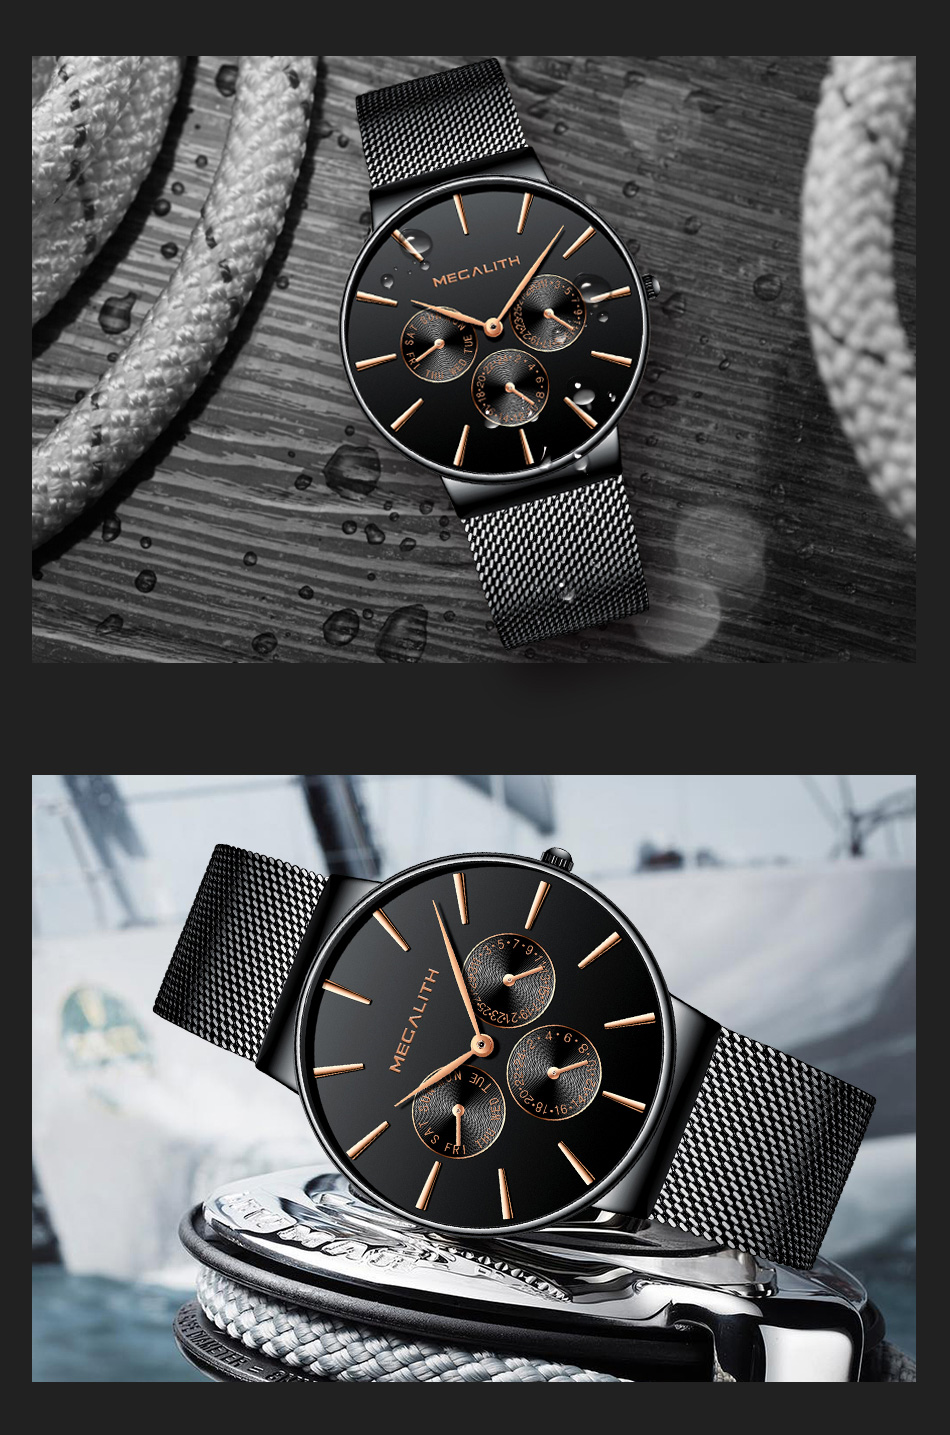 MEGALITH Mens Watches Top Brand Luxury Waterproof Wrist Watches Ultra Thin Date Simple Casual Quartz Watch For Men Sports Clock 14